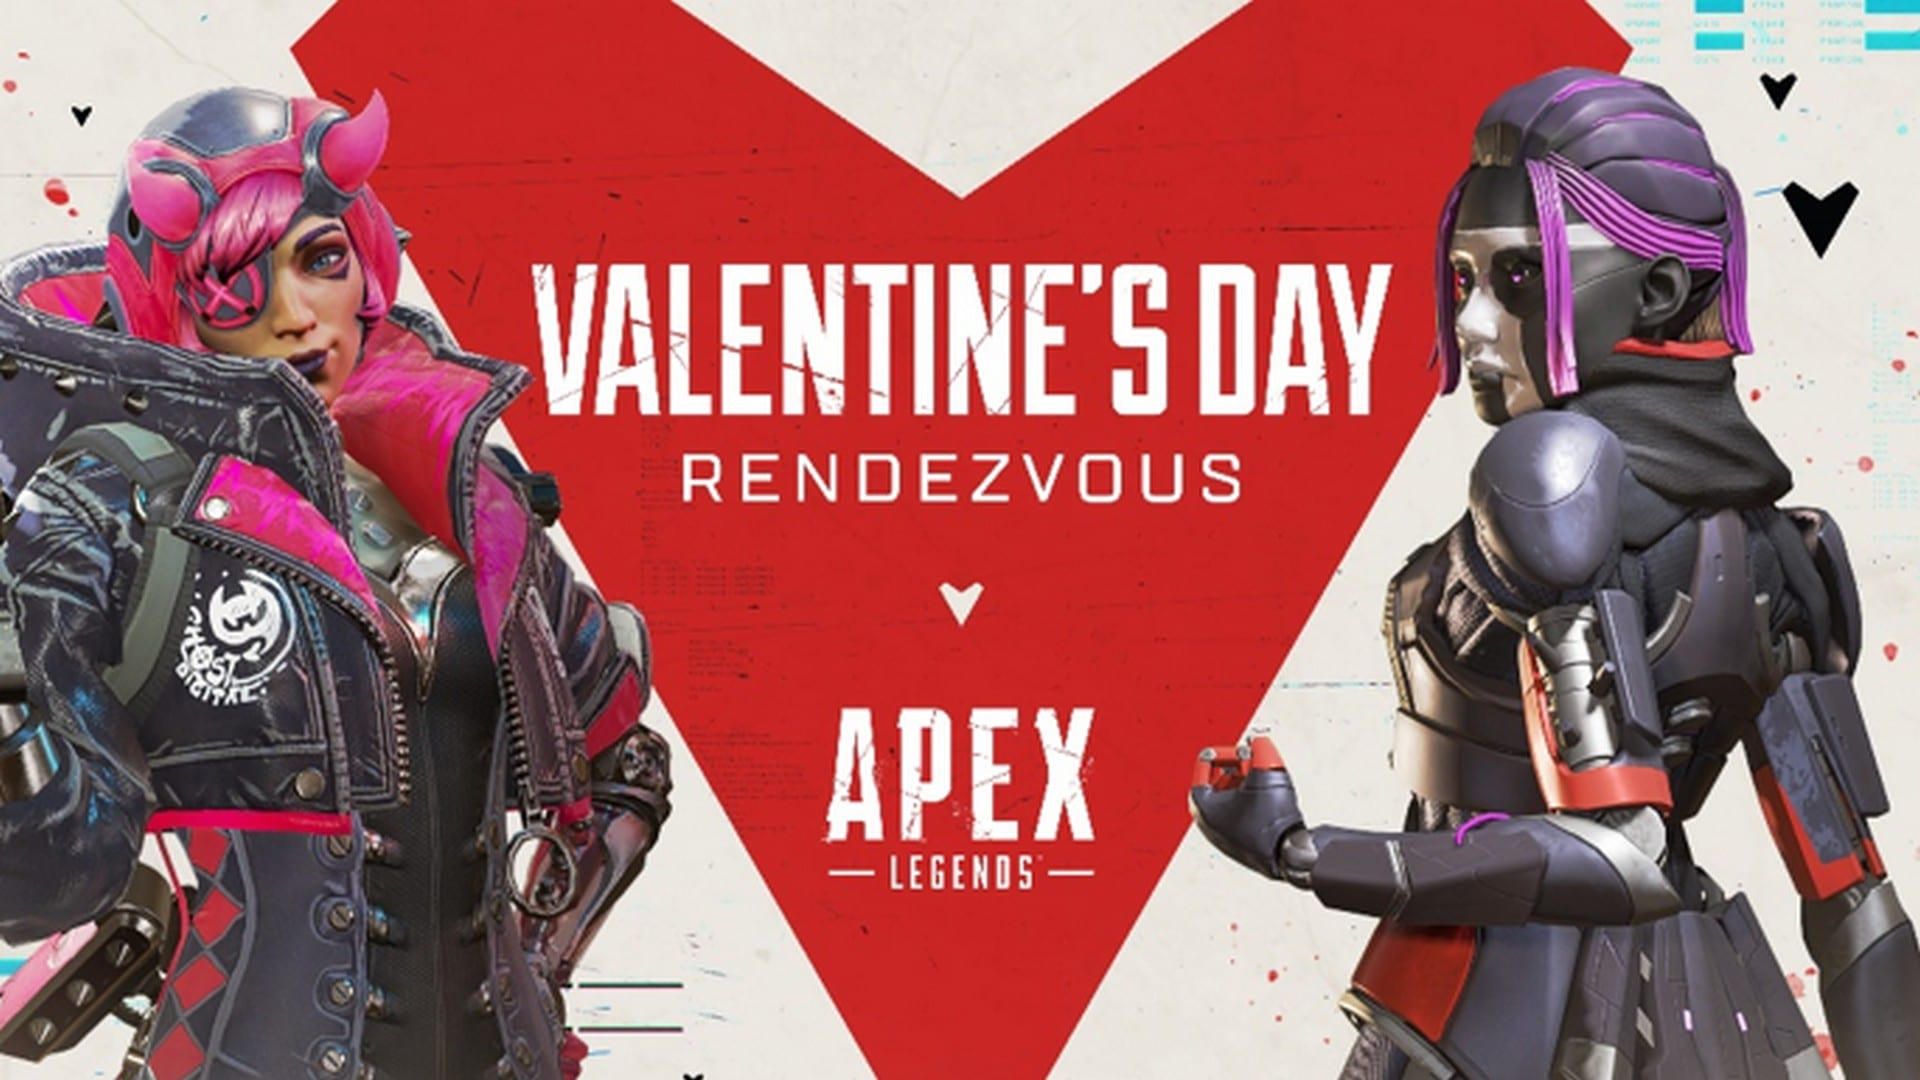 Play Duos And Get Themed Items During Apex Legends Valentine's Day Rendezvous Event